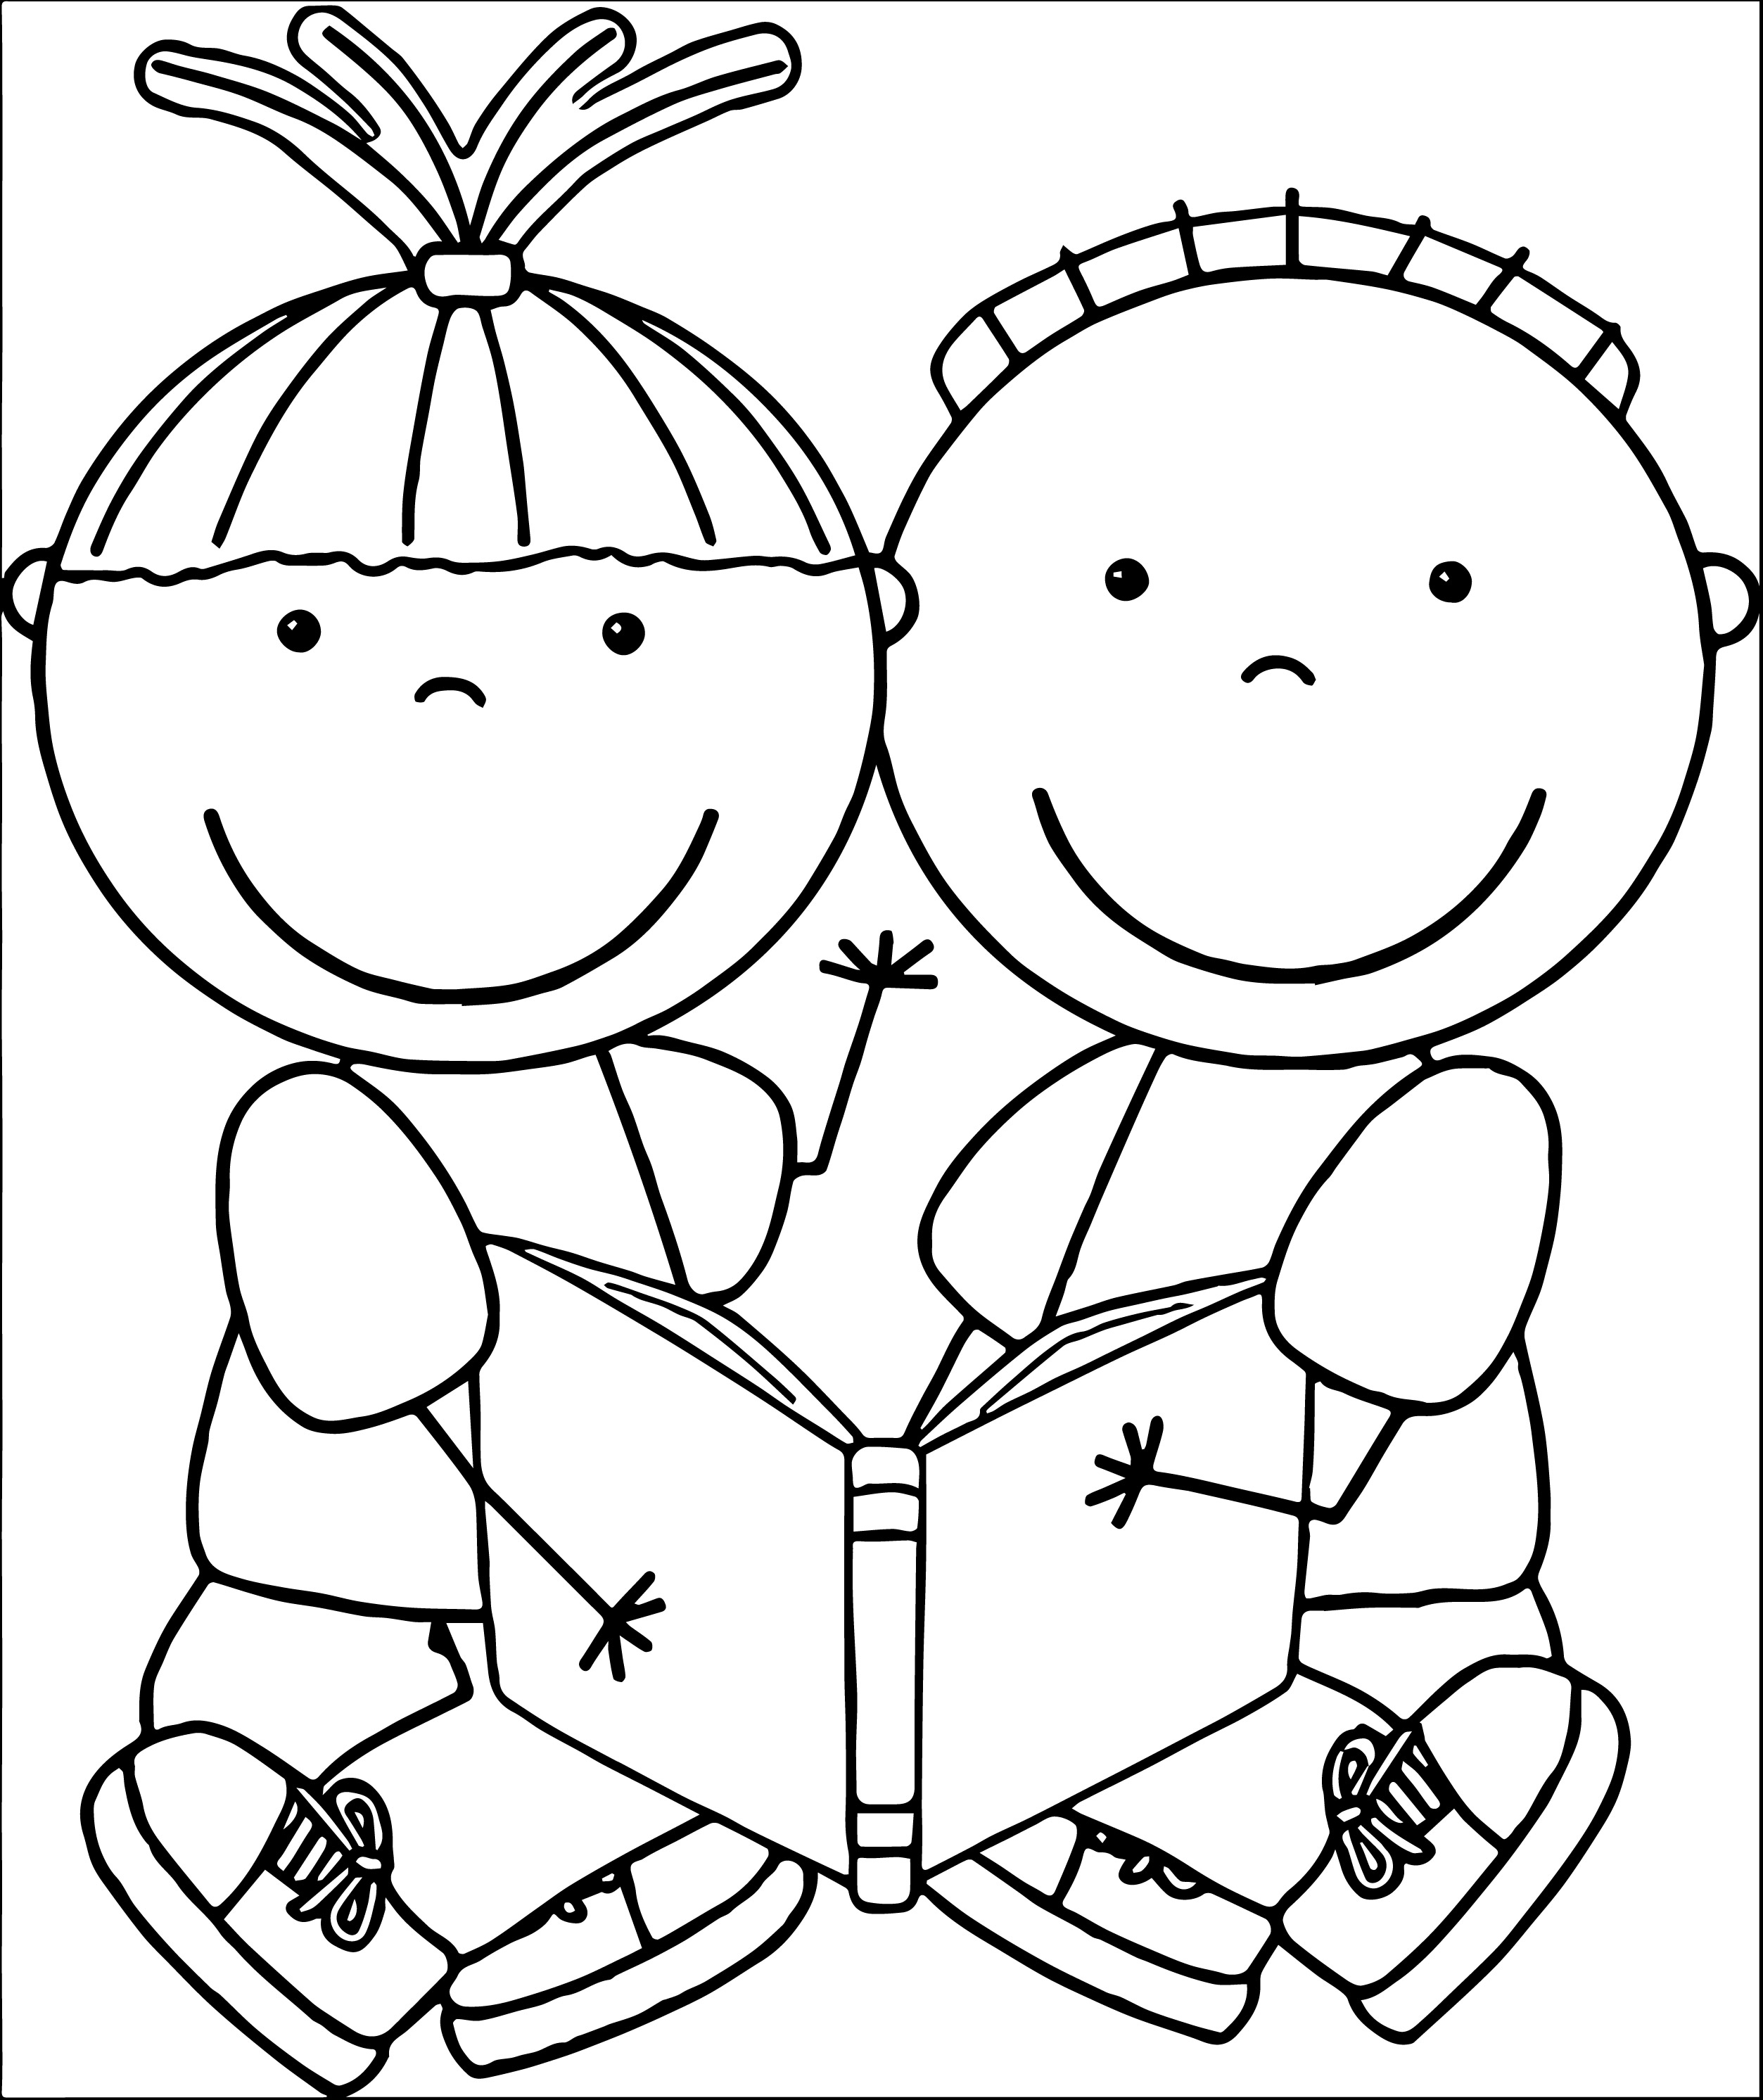 Children Reading Clipart Black And White-Children Reading Clipart Black And White - clipartsgram clipartall.com 2506 x 2985-9